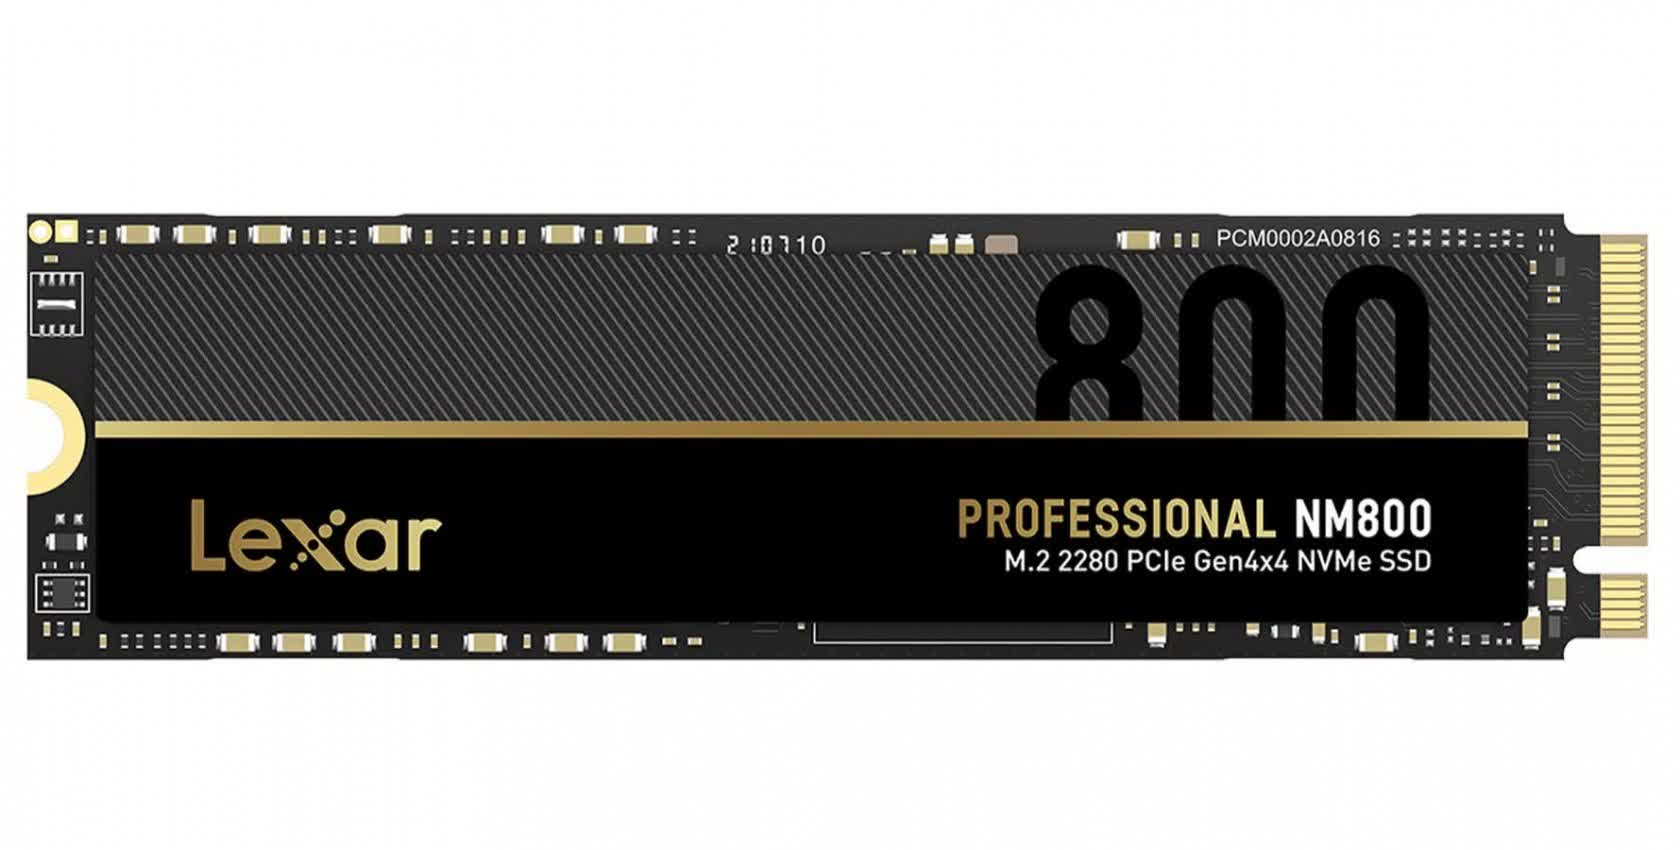 Lexar's pro-level SSD offers reads up to 7400 MB/s, uses graphene heat spreader